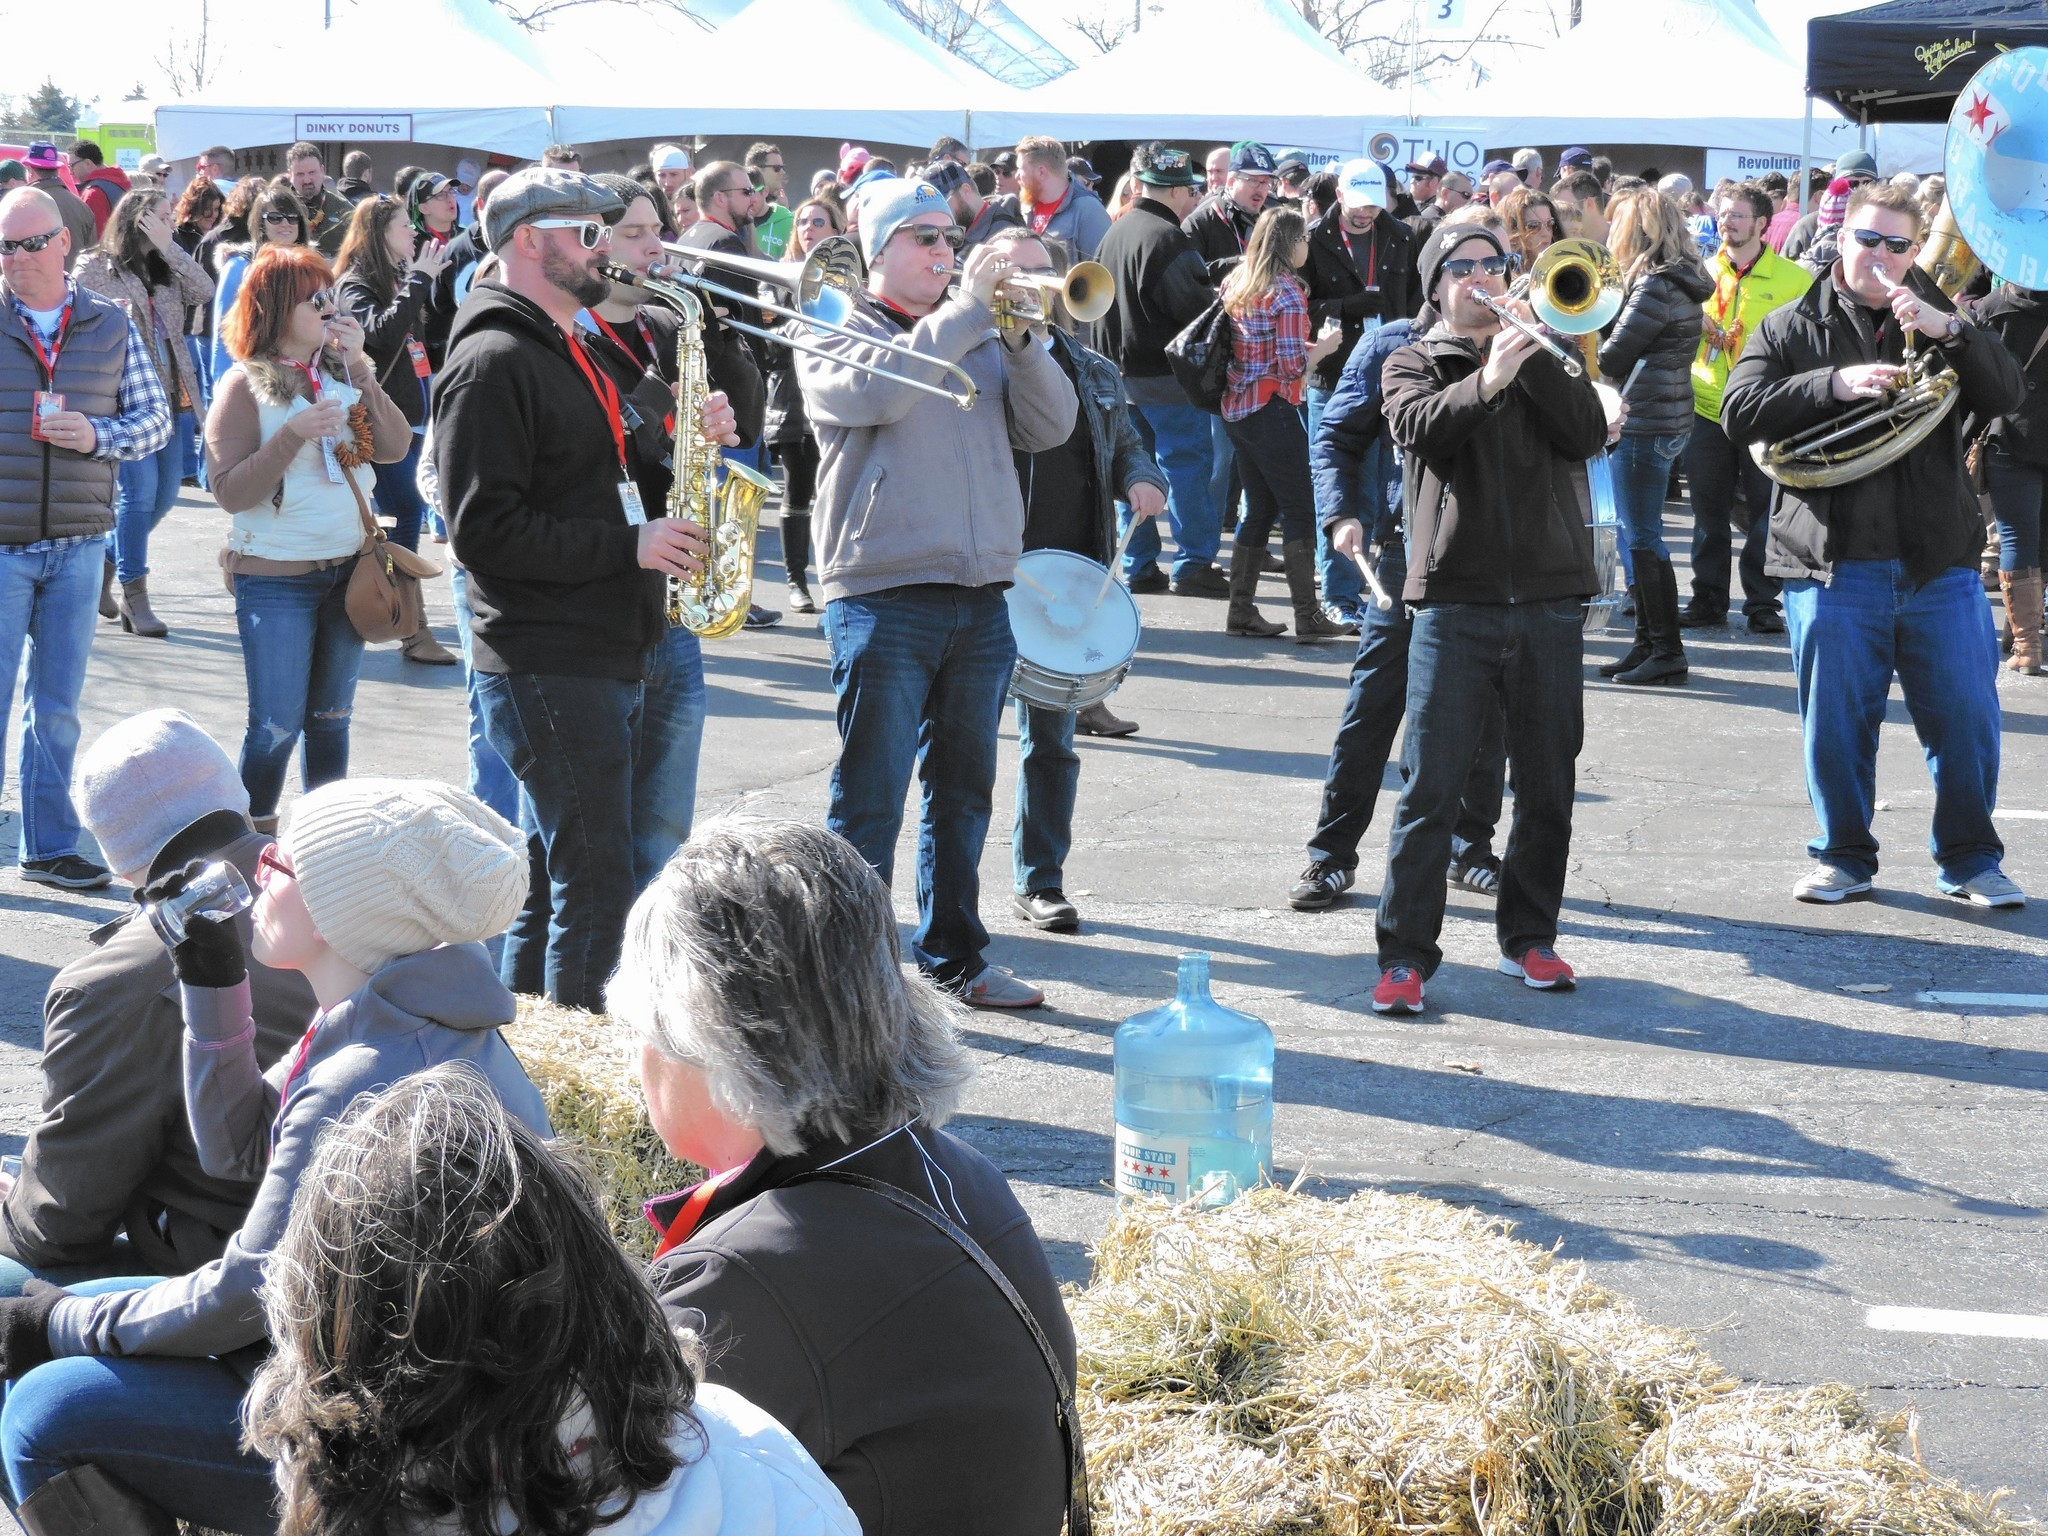 Winter Ale Fest Promising More Than 150 Beers 16 Food